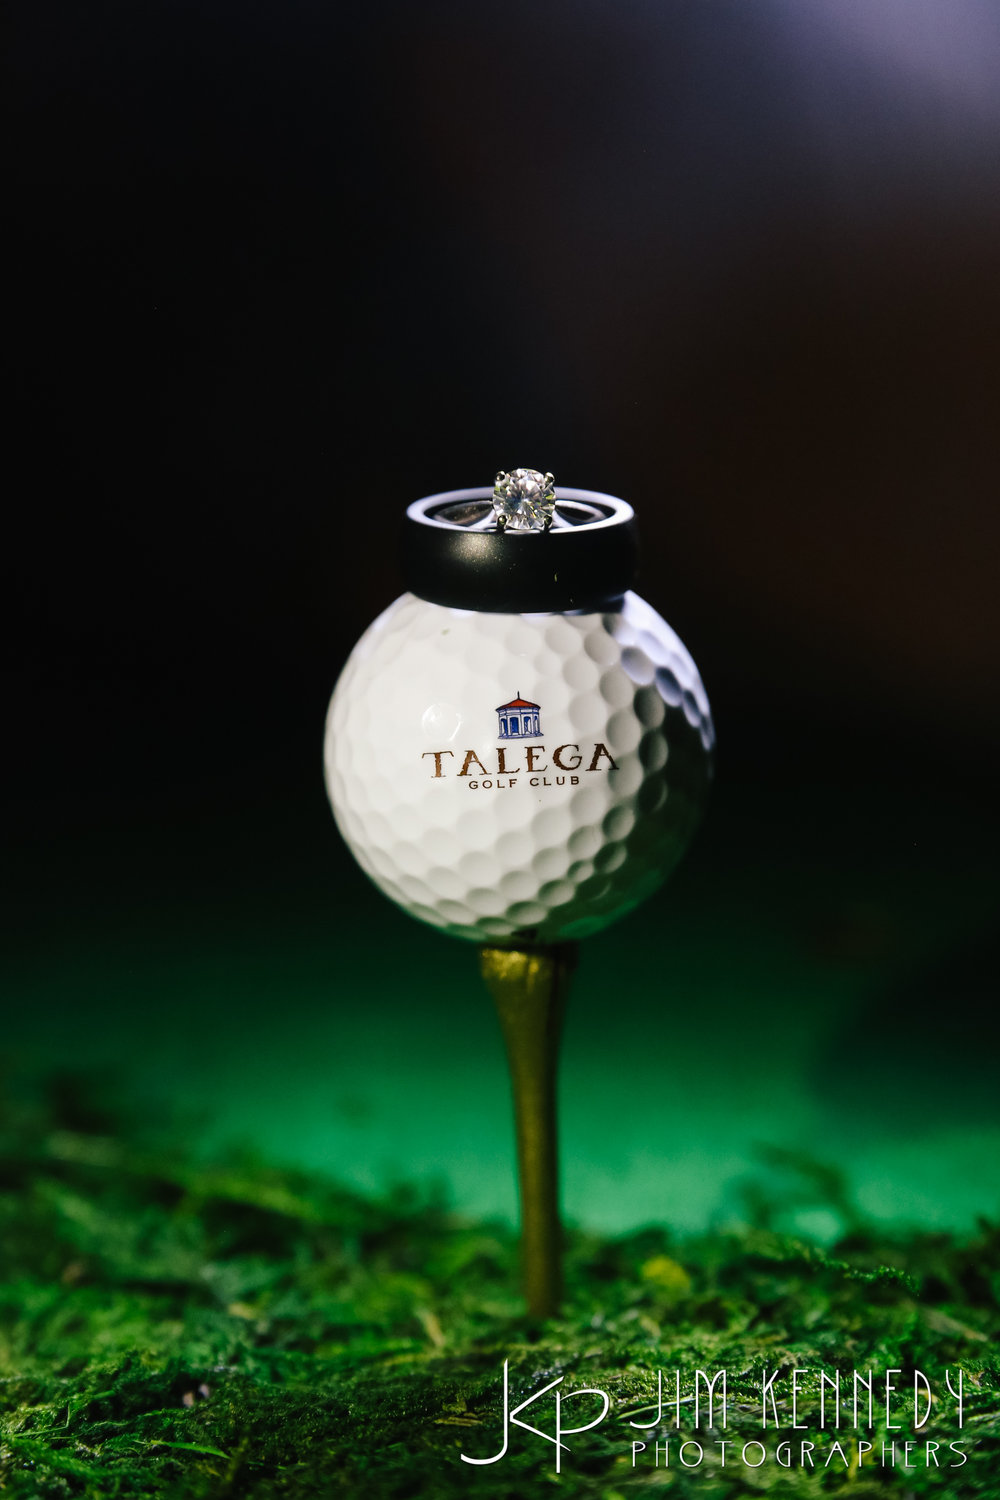 talega_golf_club_wedding-5033.jpg